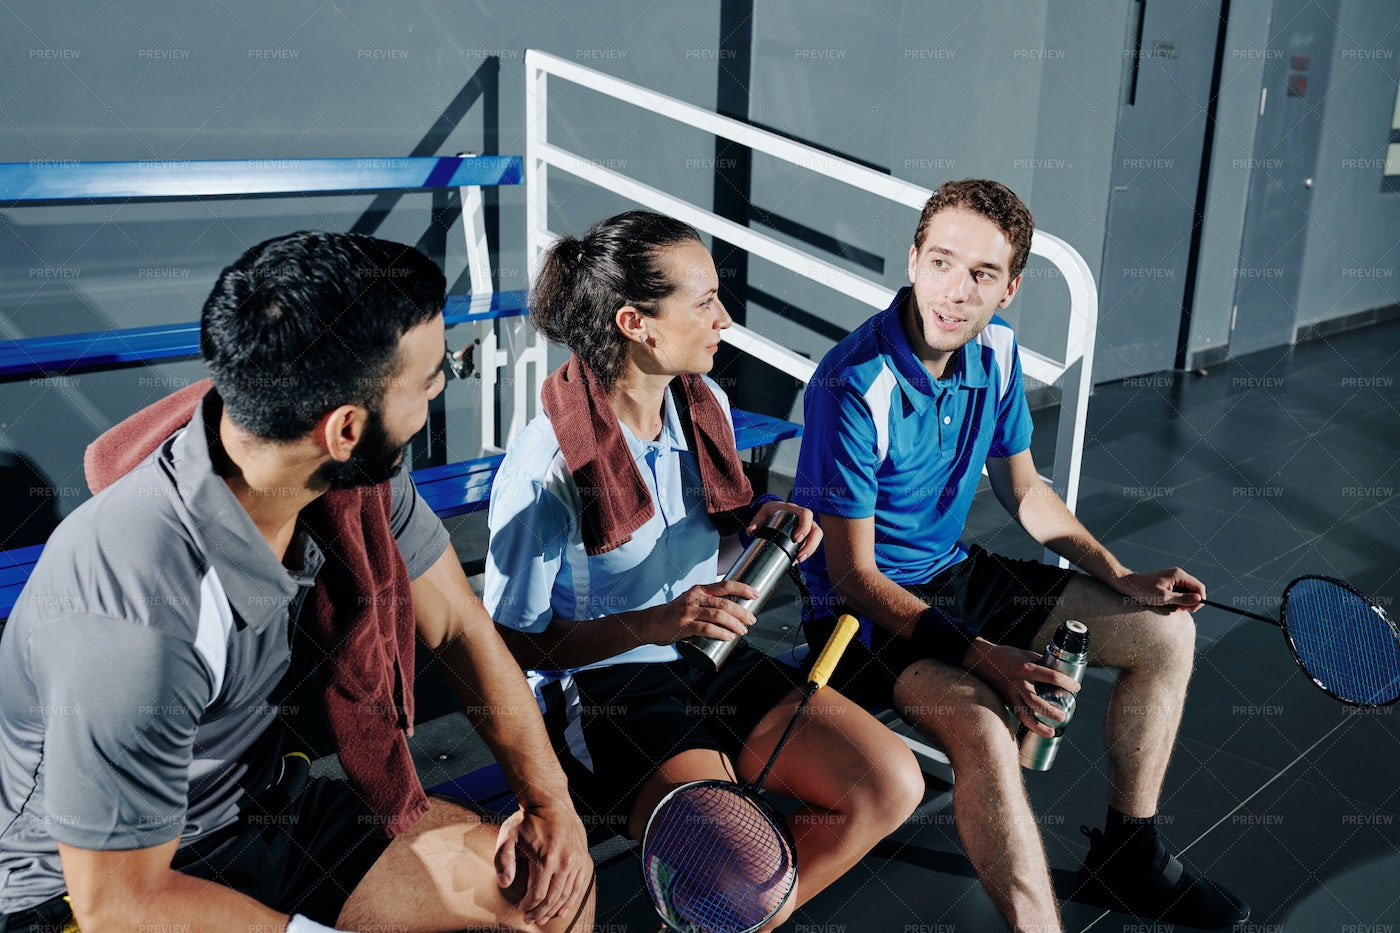 Badminton Players Resting On Bench: Stock Photos